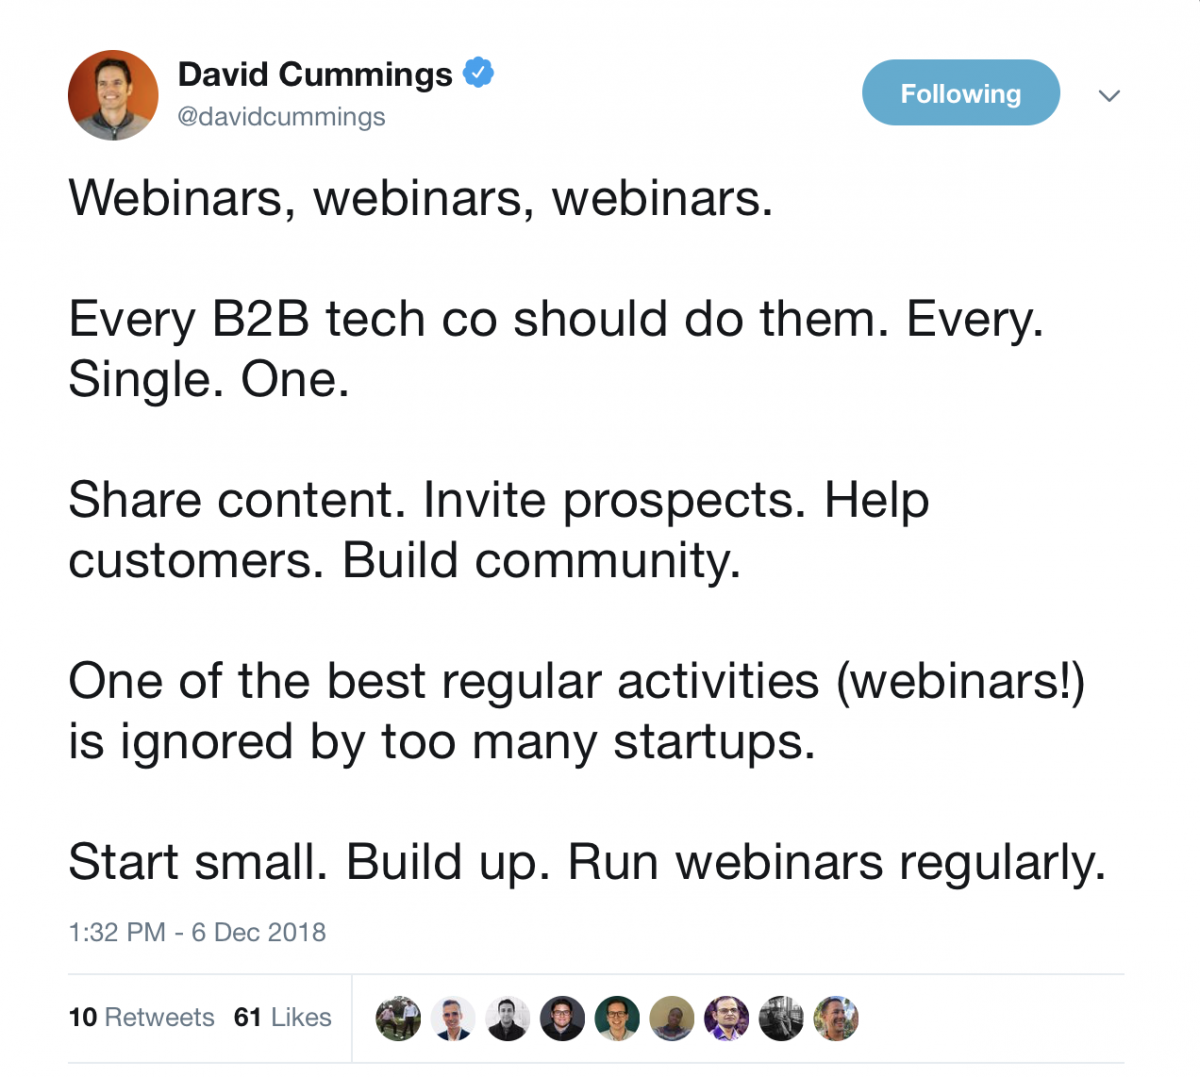 Tweet about importance of webinars